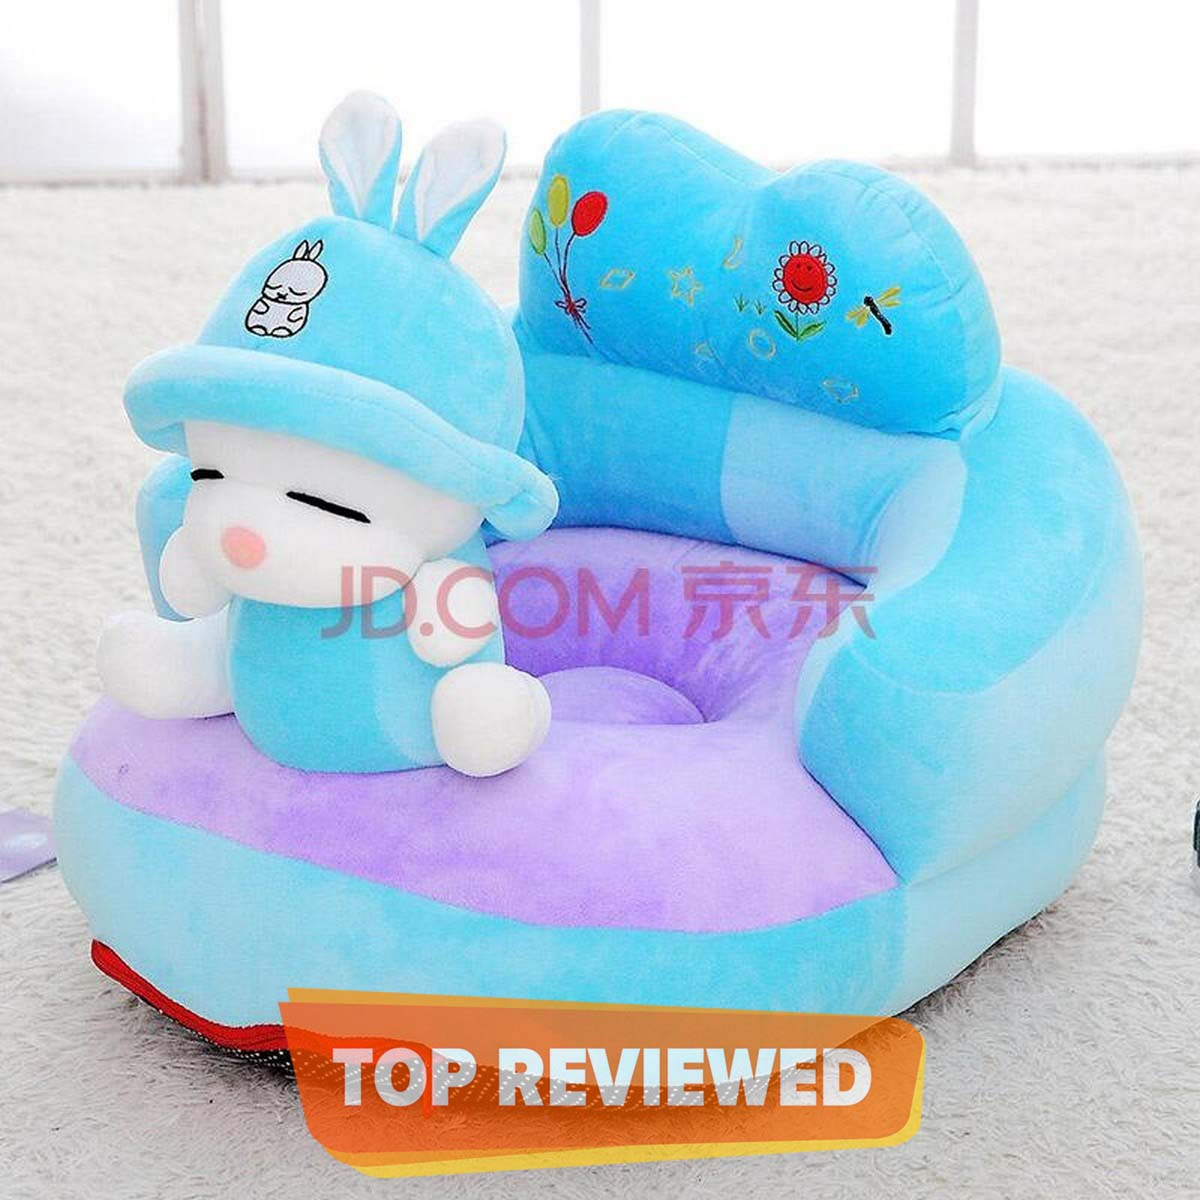 Baby's Cute Blue Animal Cartoon Plush Toys Support Chair Infant Learning To Sit Removable & Washable Baby Soft Seats Sofa